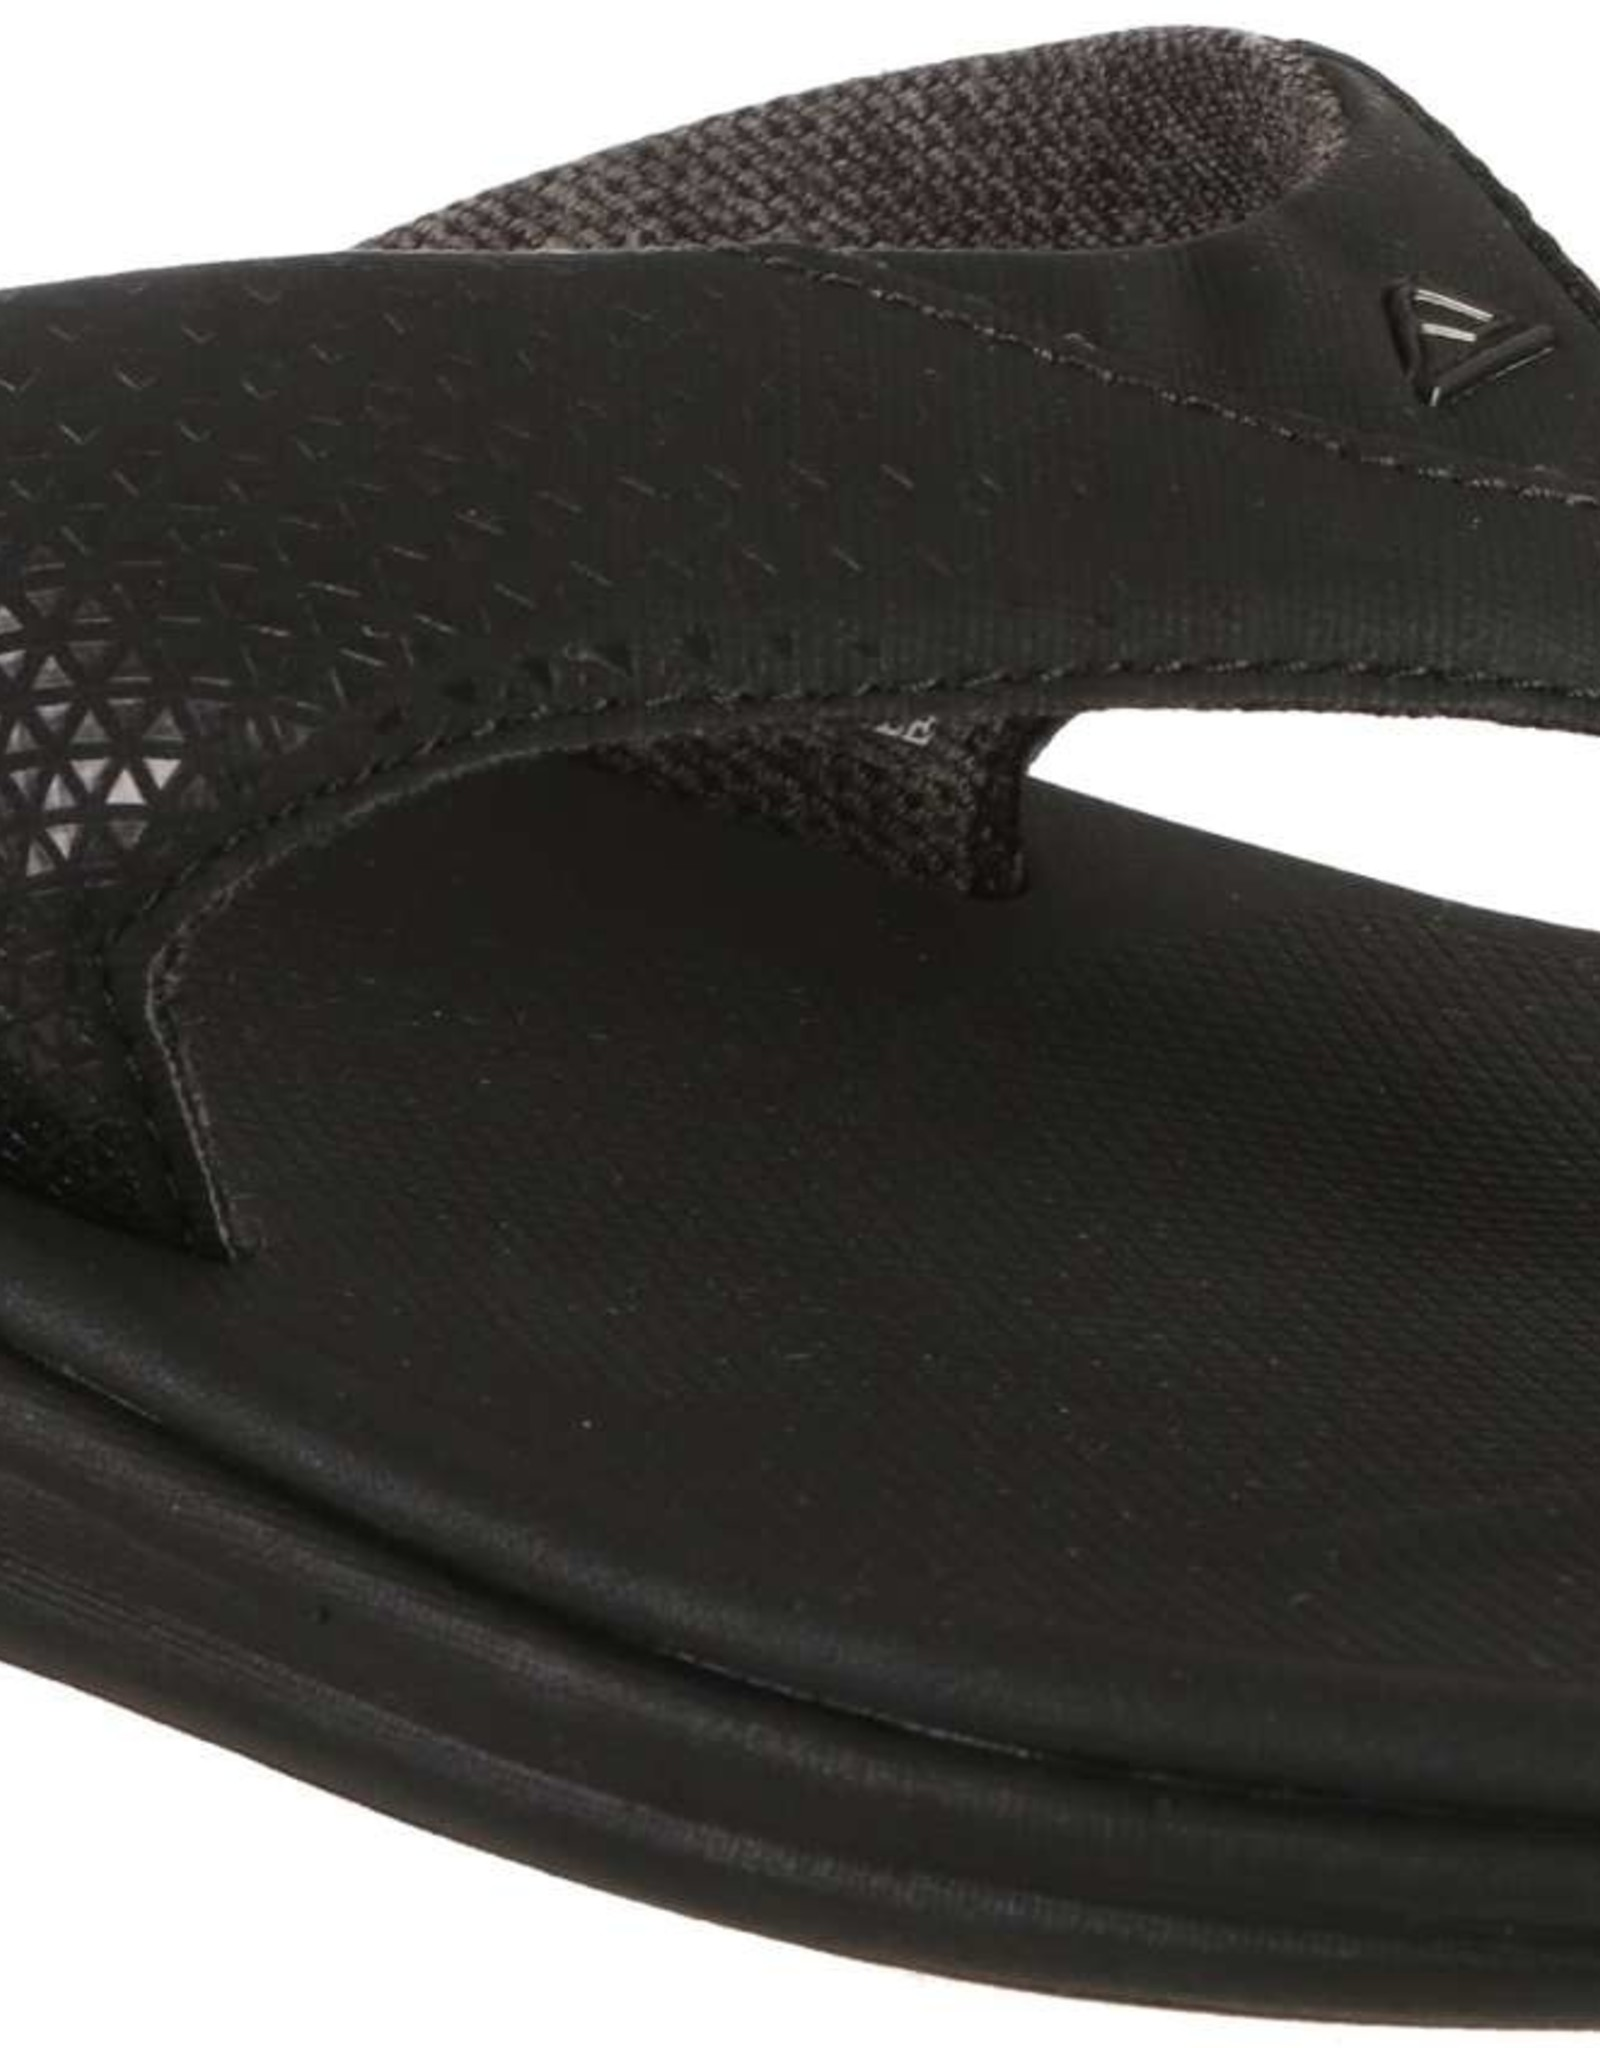 Reef REEF - Mens REEF ROVER Sandals - All Blk -